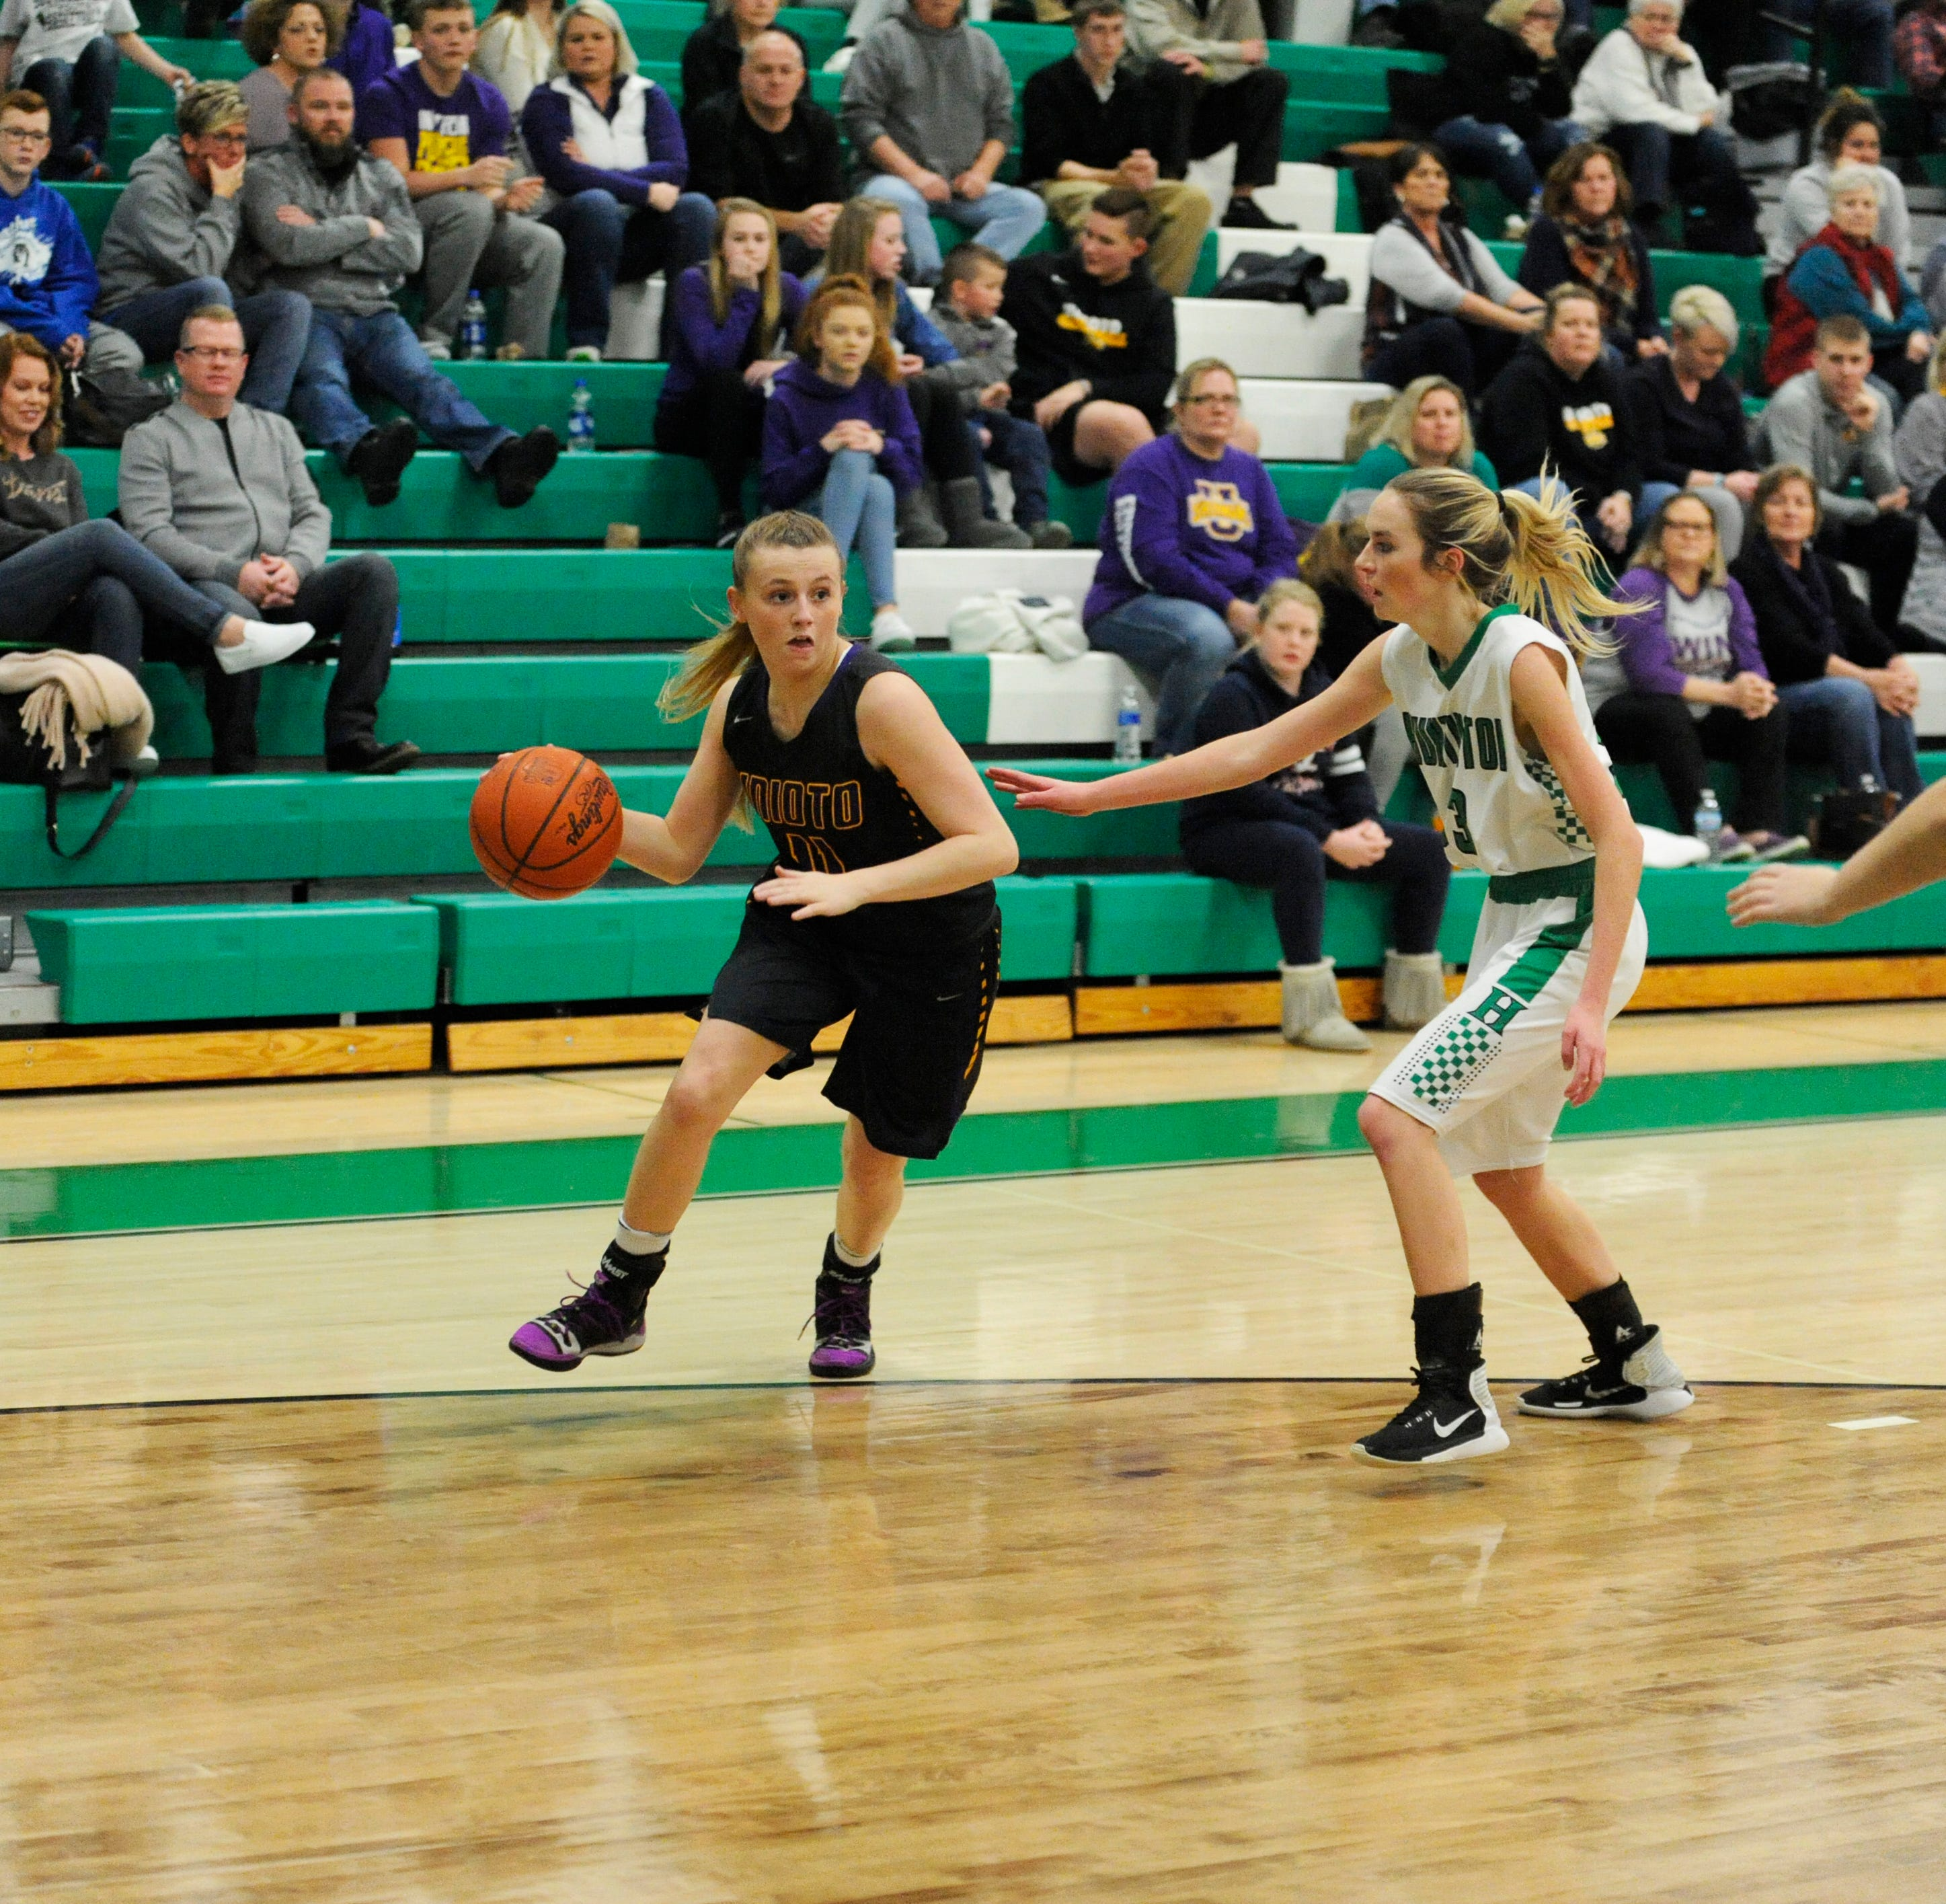 OHIO HS GIRLS BASKETBALL: Unioto stays undefeated in SVC with 55-33 win over Huntington